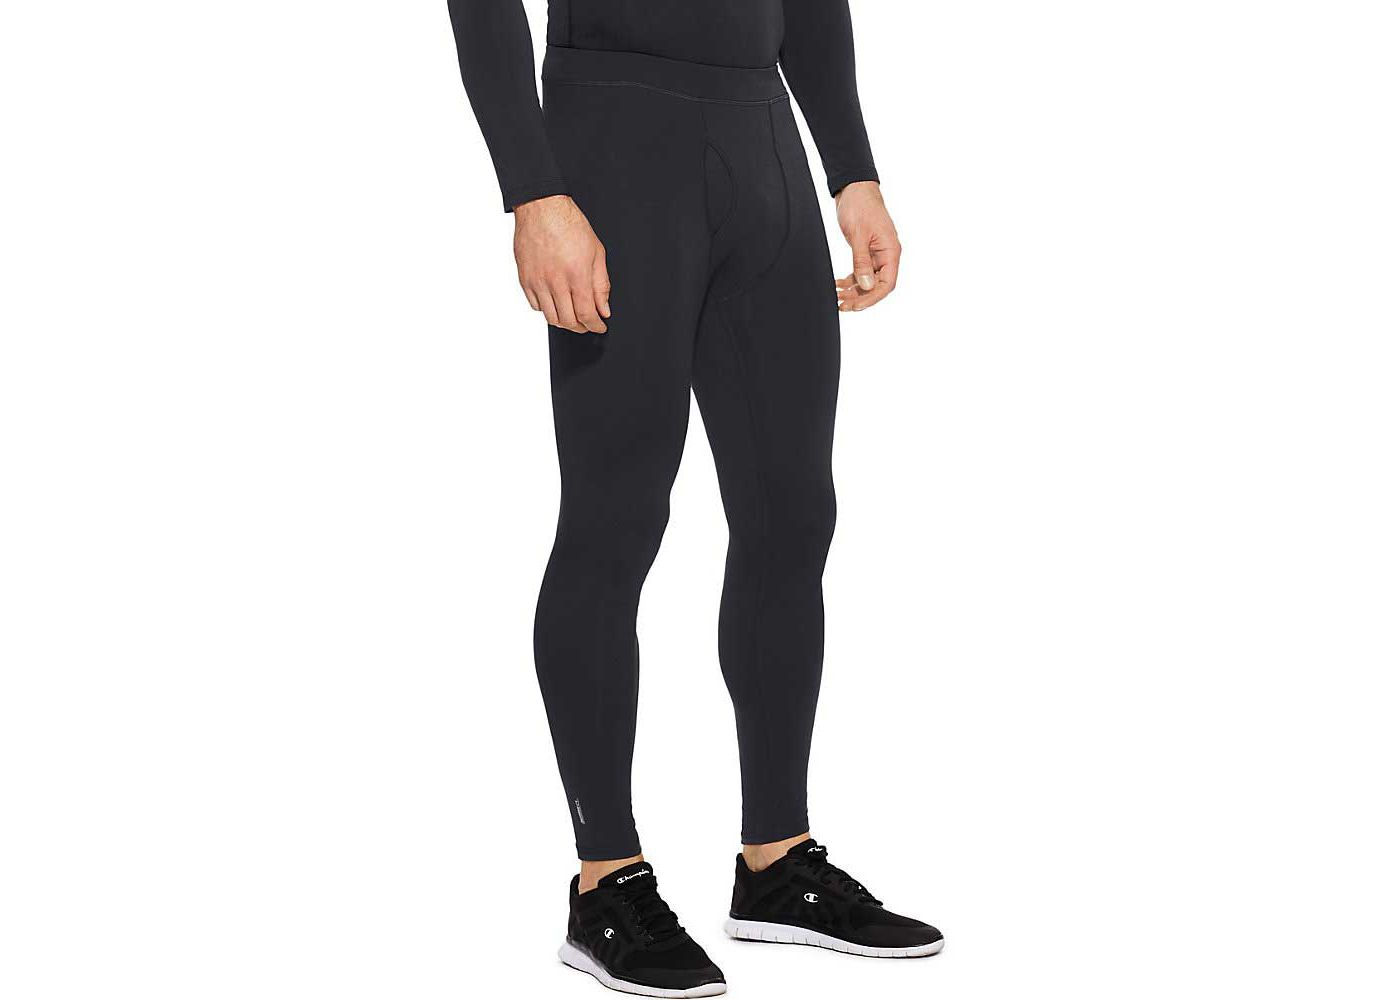 Duofold Men's Flex Weight Pants